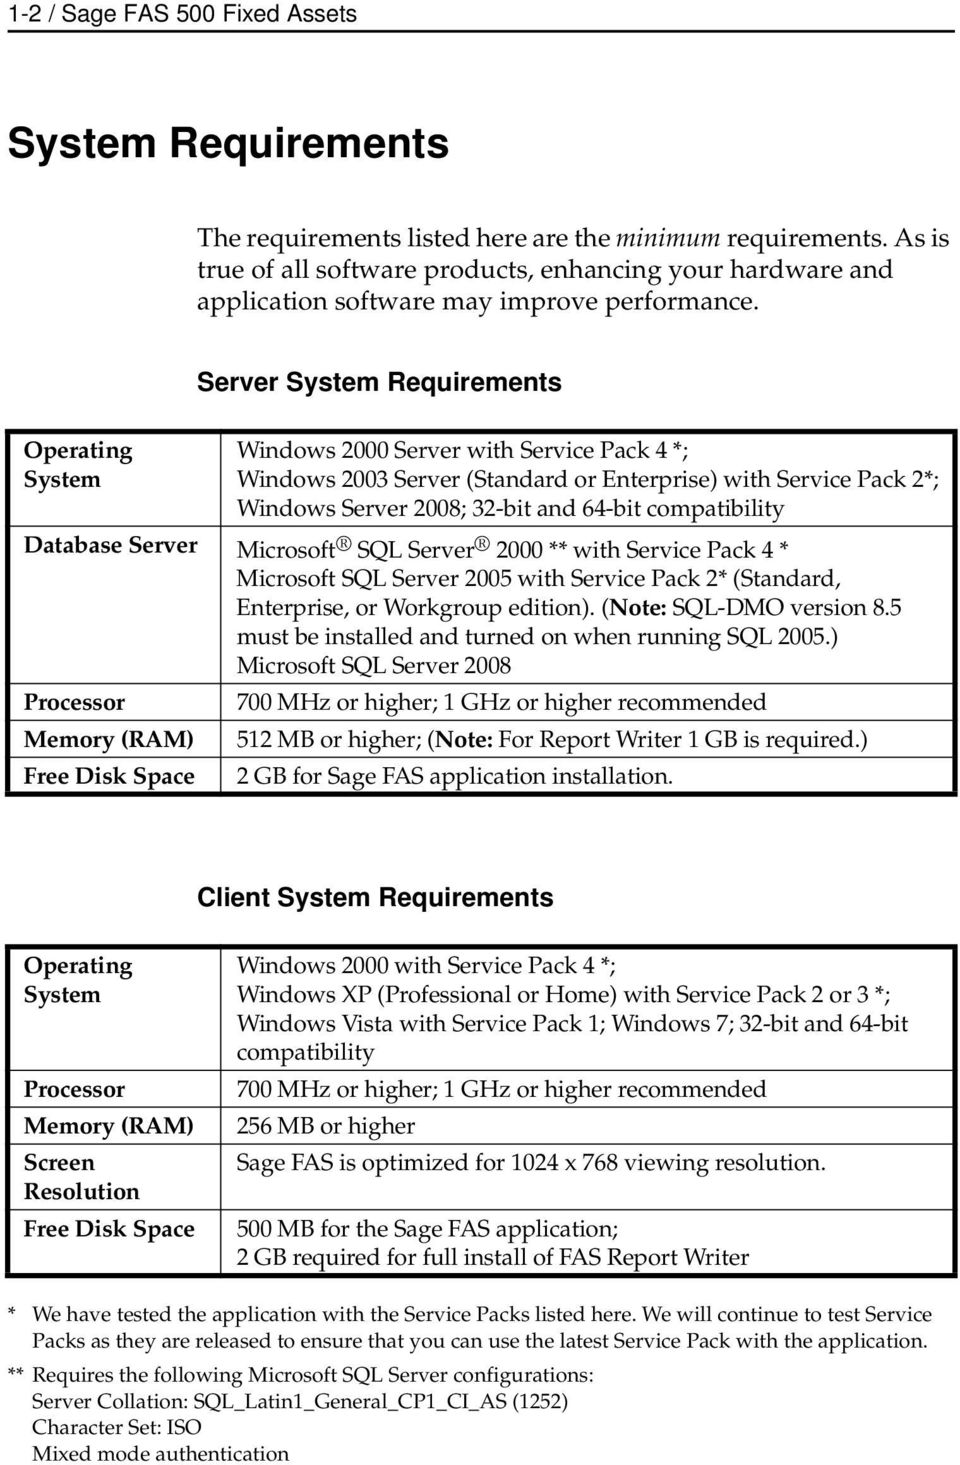 Operating System Server System Requirements Windows 2000 Server with Service Pack 4 *; Windows 2003 Server (Standard or Enterprise) with Service Pack 2*; Windows Server 2008; 32-bit and 64-bit